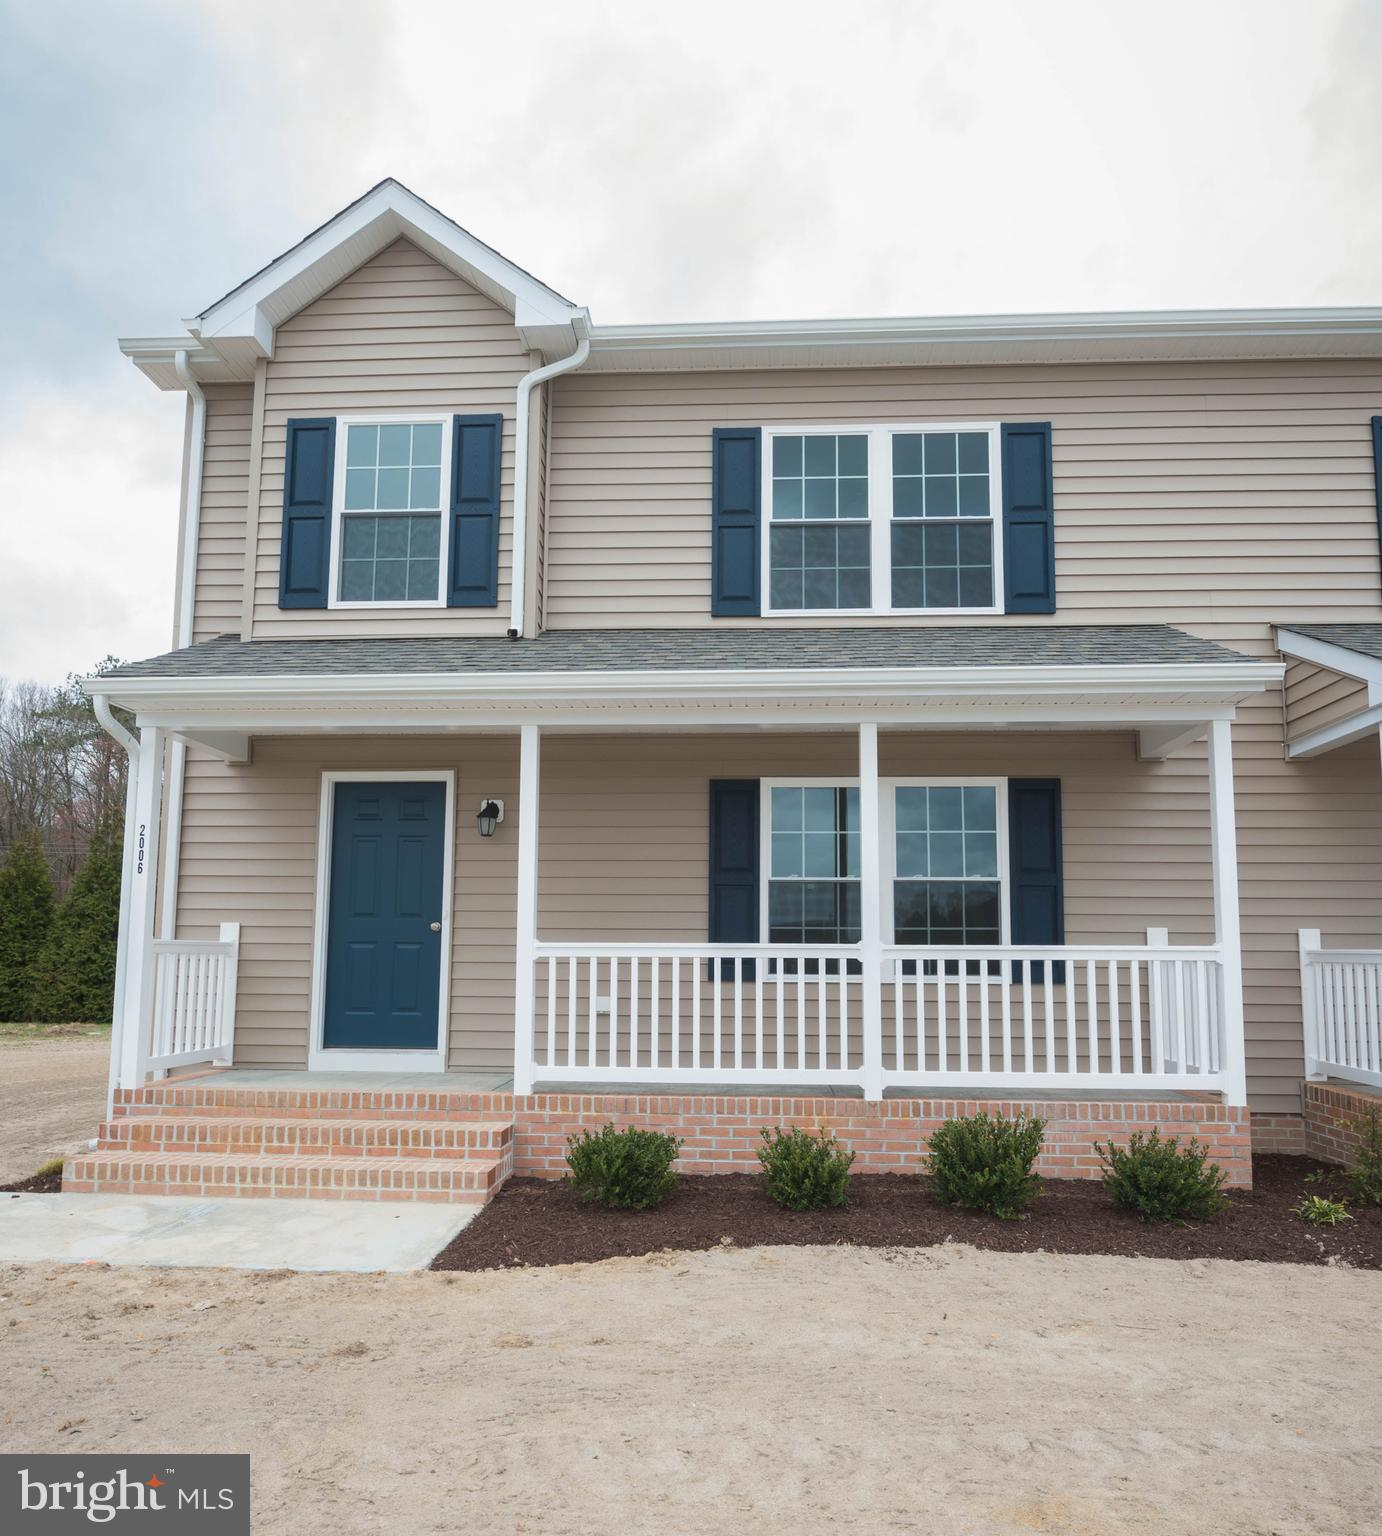 Brand new home just completed! Southern Fields - an attractive community of new homes. Qualifies for